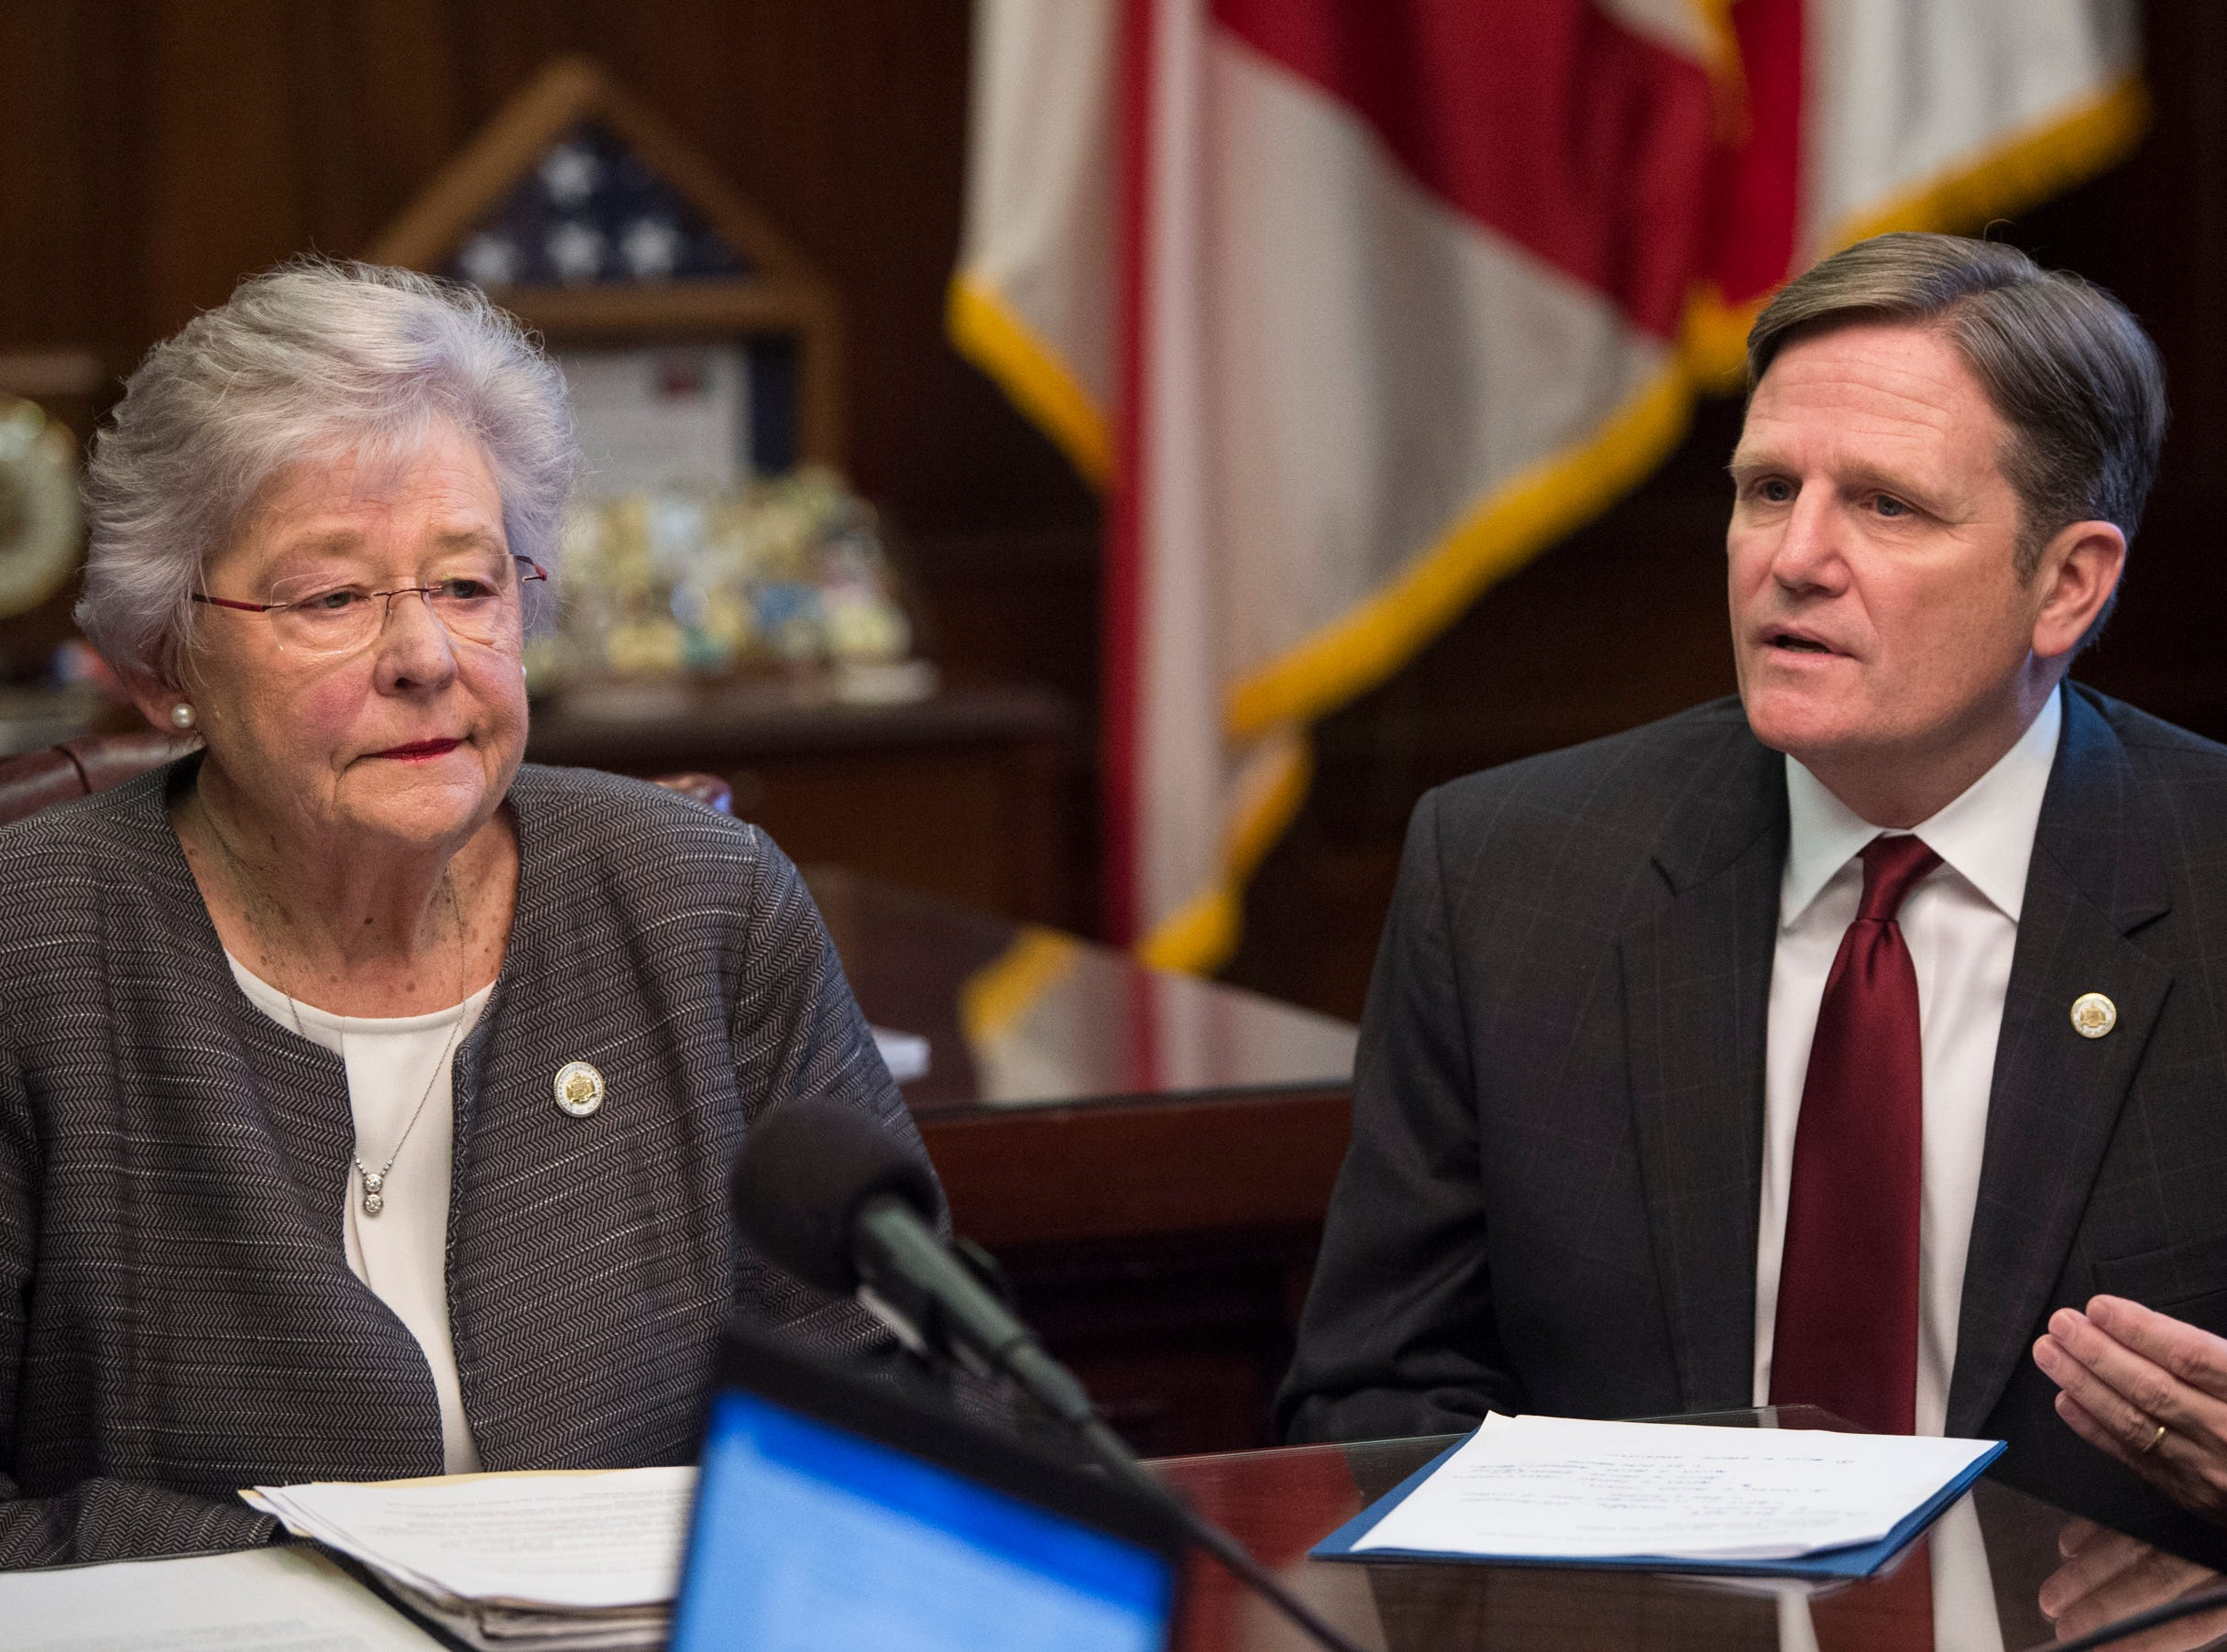 Jeff Dunn, Commissioner of the Alabama Department of Corrections, speaks with Gov. Kay Ivey during a press conference in the Governor's office at the Alabama State Capitol in Montgomery, Ala., on Tuesday, Feb. 12, 2019.